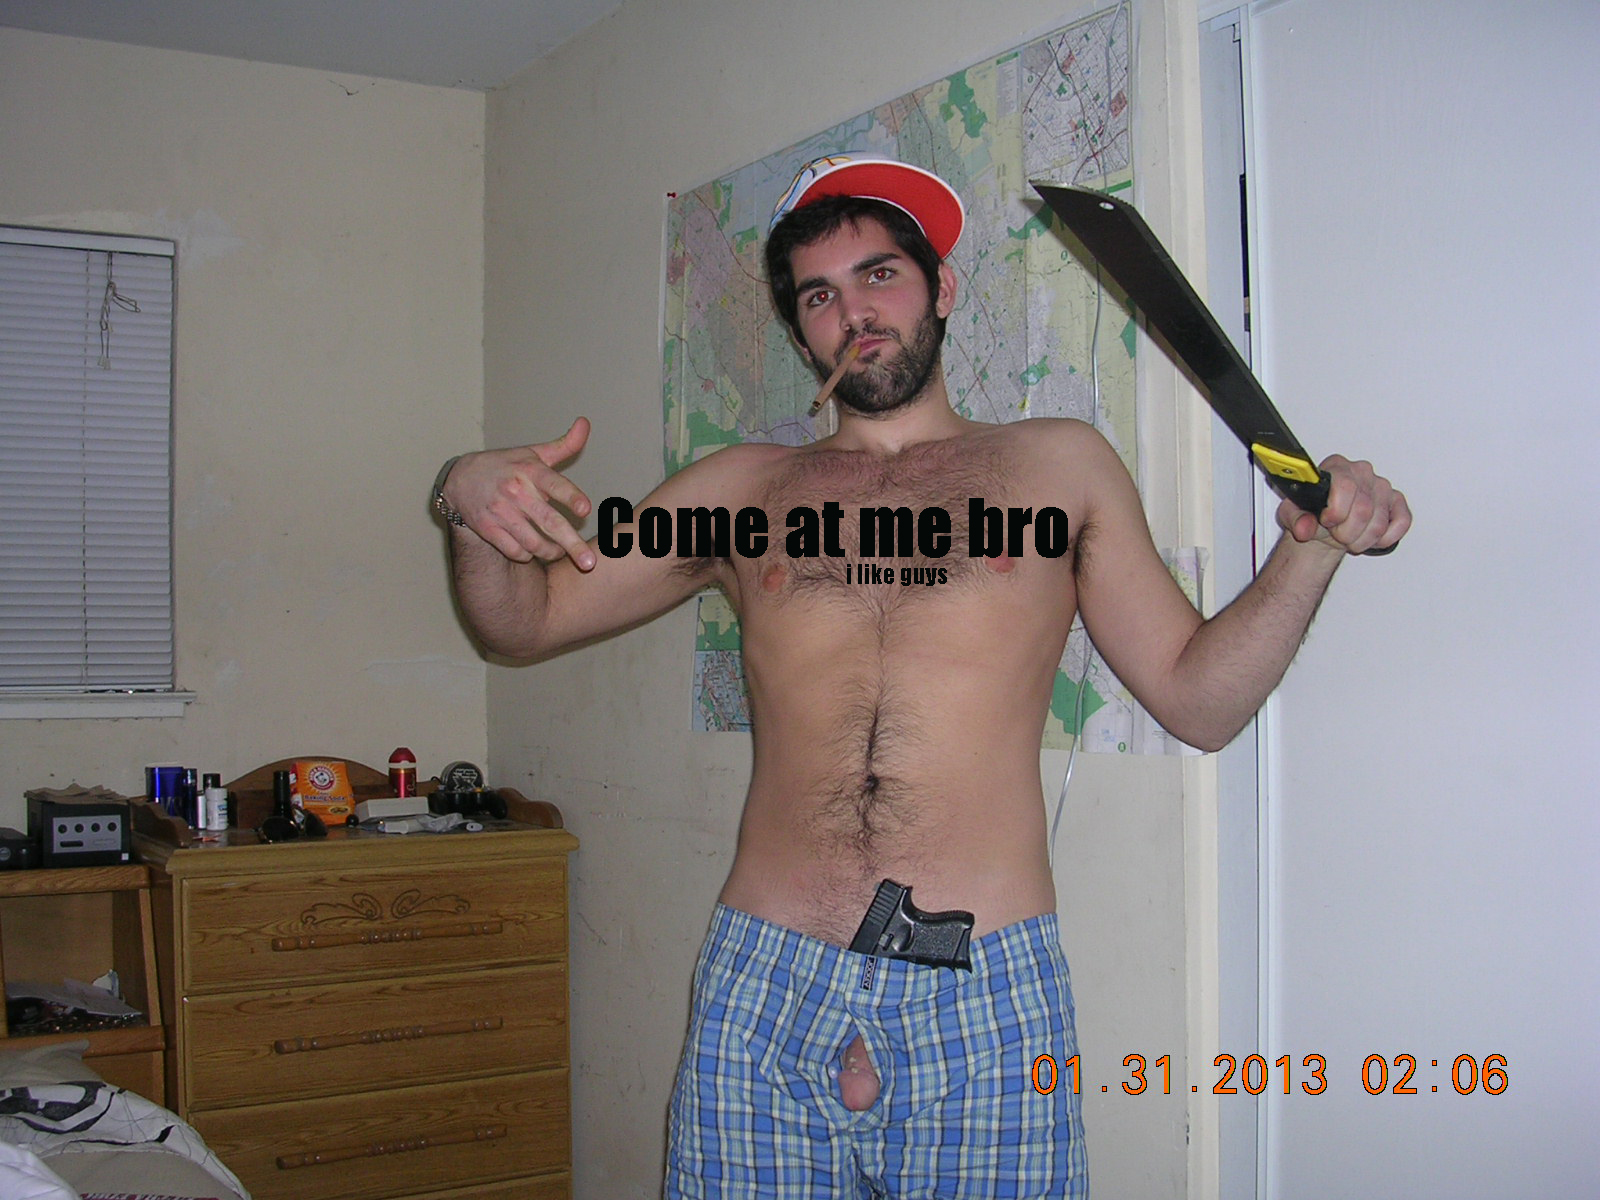 Come at me bro.jpg